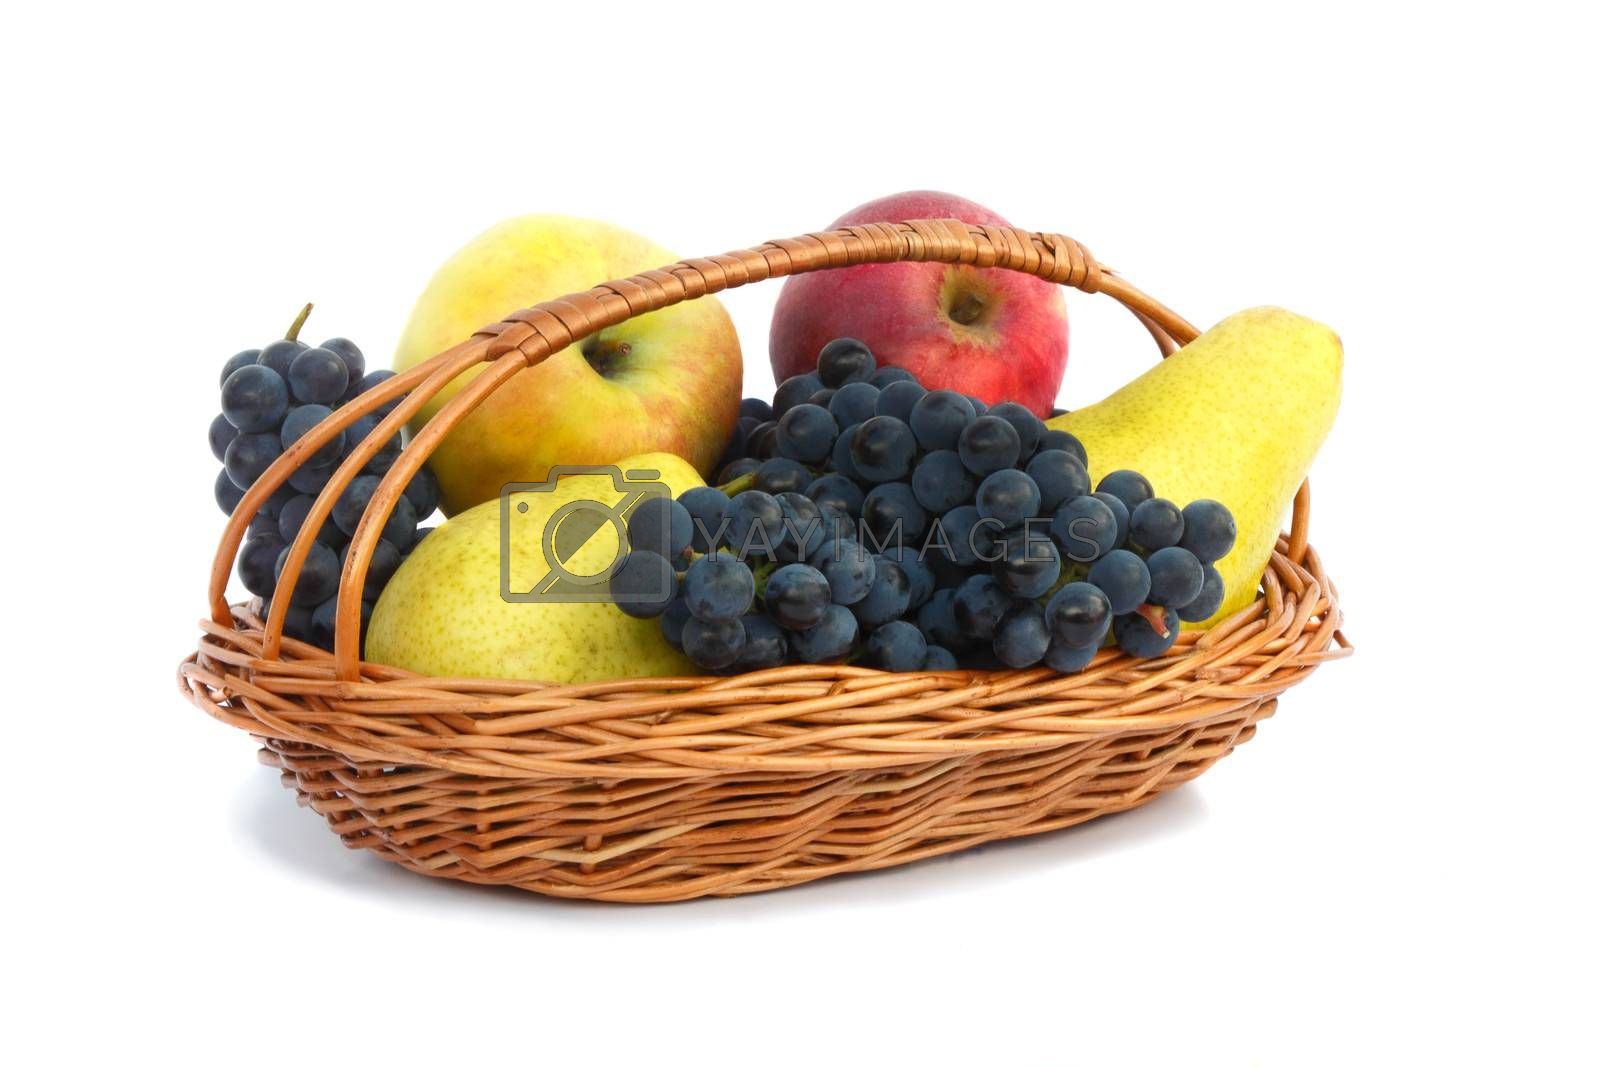 Ripe pears, apples and grapes in a wicker basket. Presented on a white background.